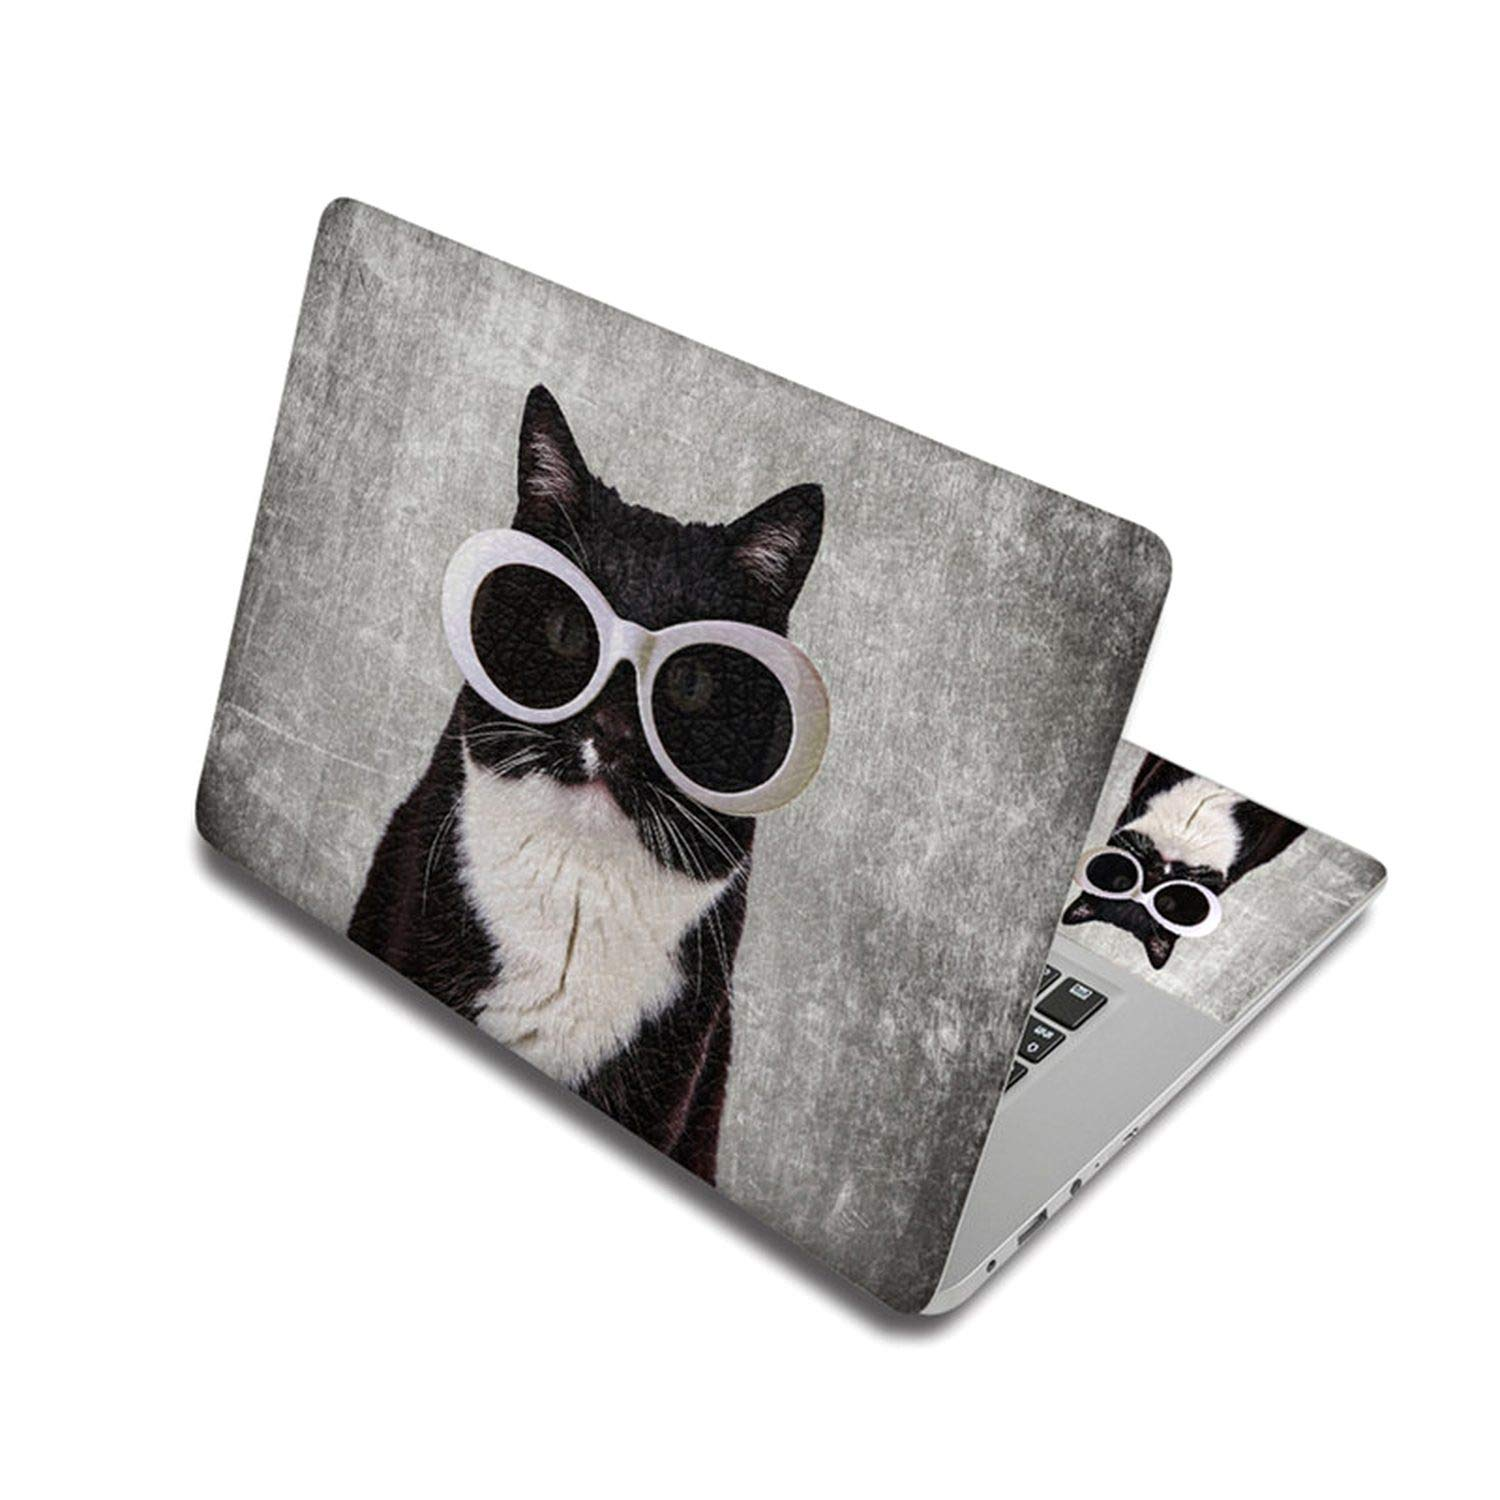 Cute Cat Pattern Sticker For Laptop Skin Removable Notebook Stickers Pc Decal For Xiaomi Pro/Mac Air/Toshiba/Hp,17 Inch,Laptop Skin 6